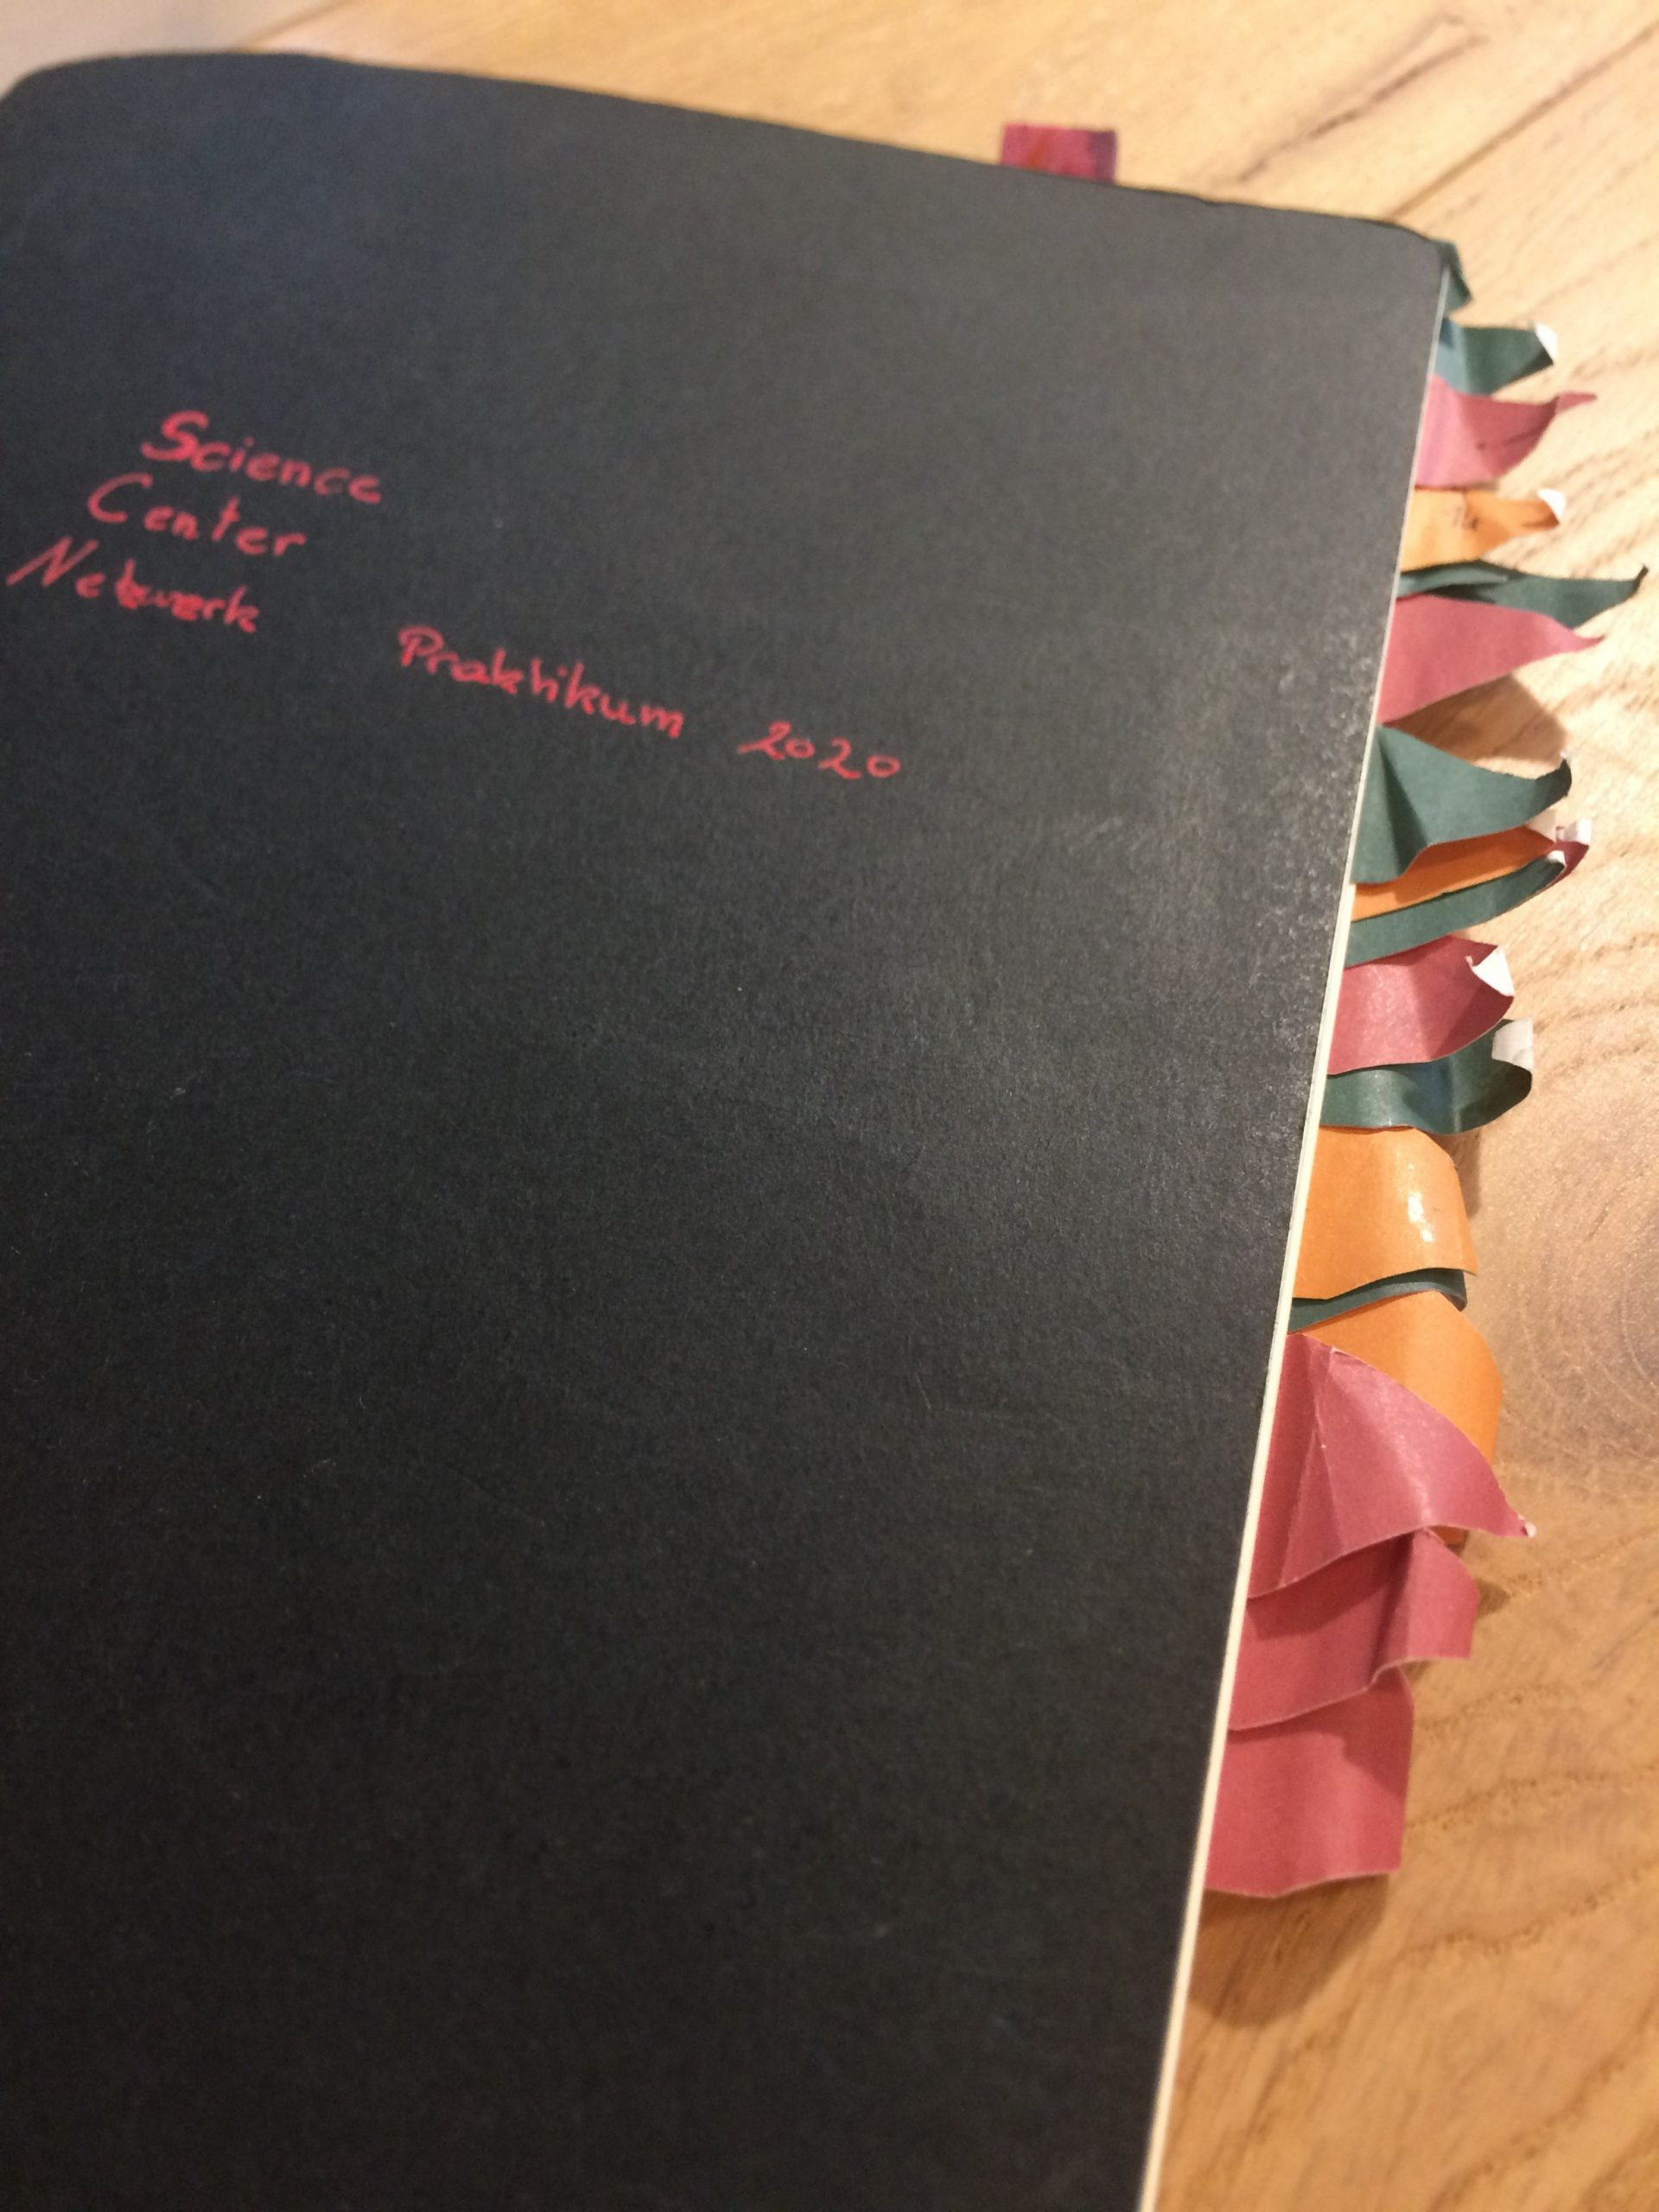 Notizbuch mit Post-its